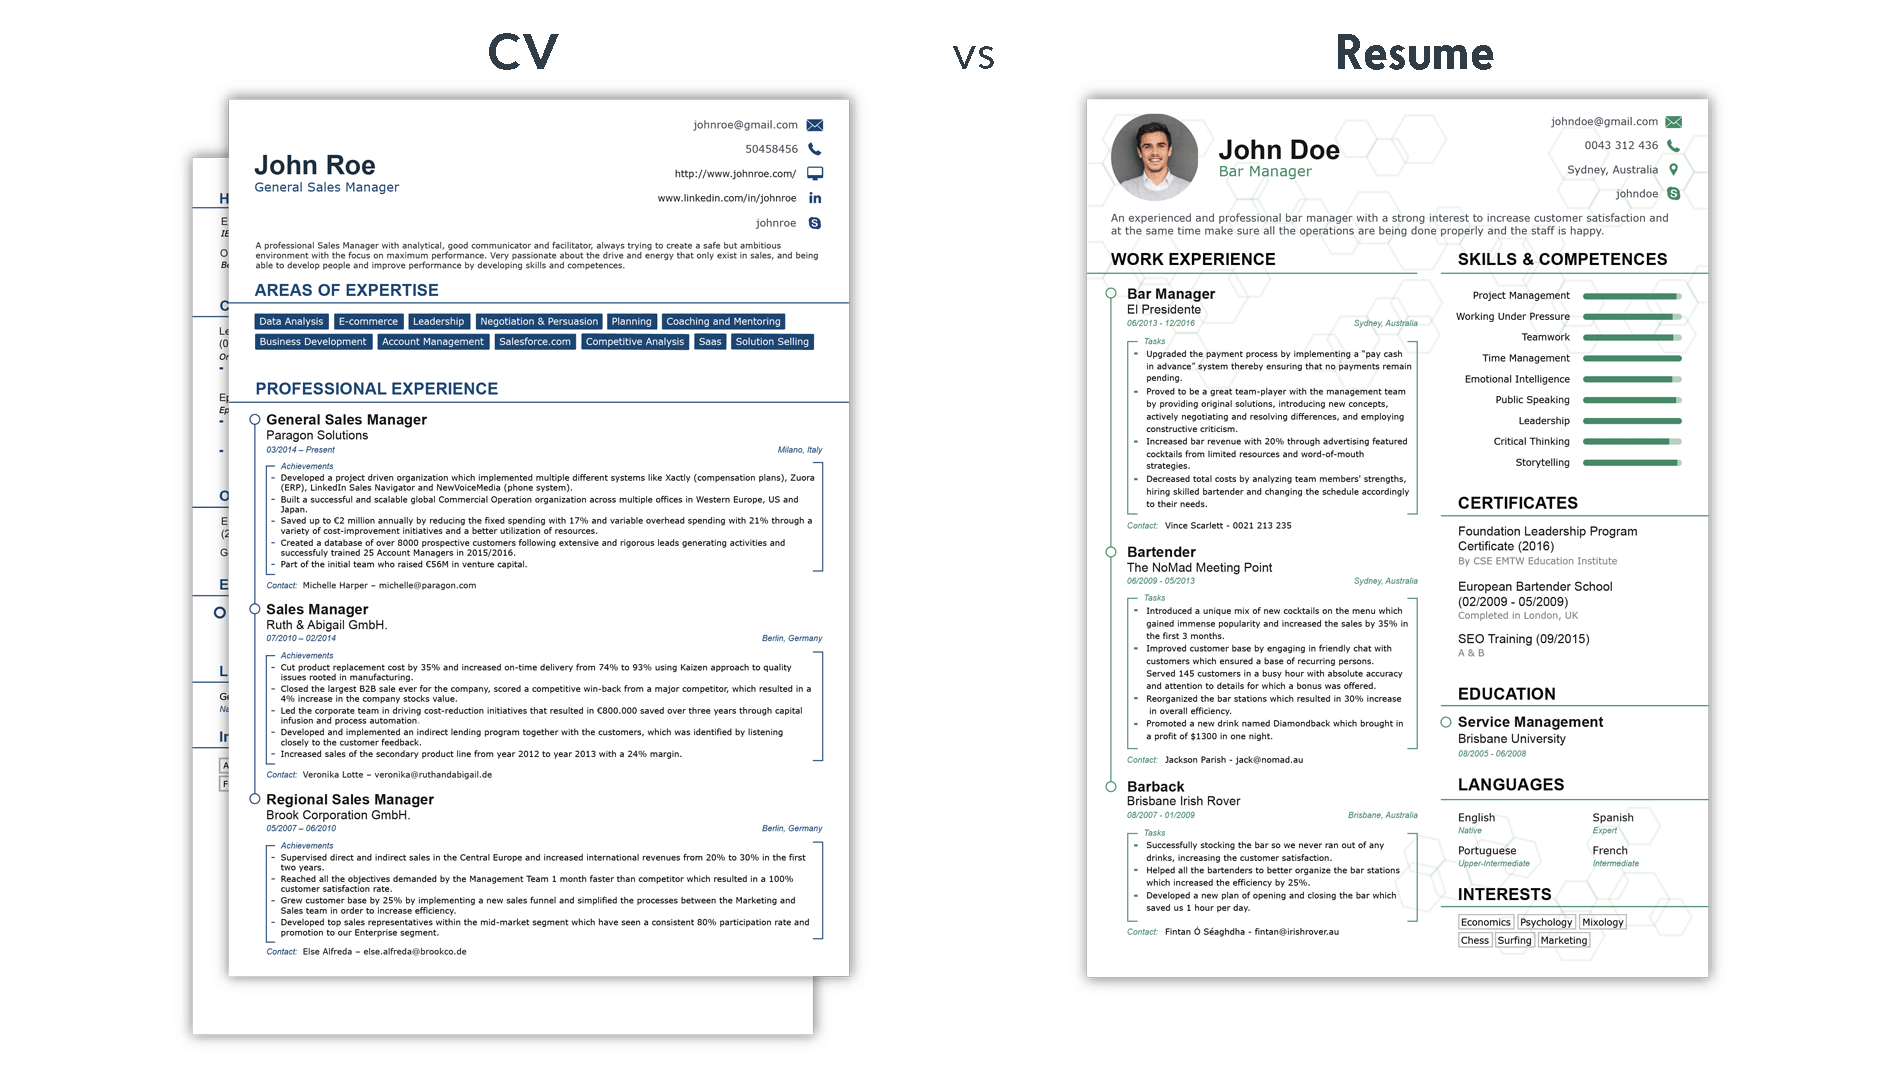 How to write a resume in 2018 guide for beginner curriculum vitae vs resume altavistaventures Gallery